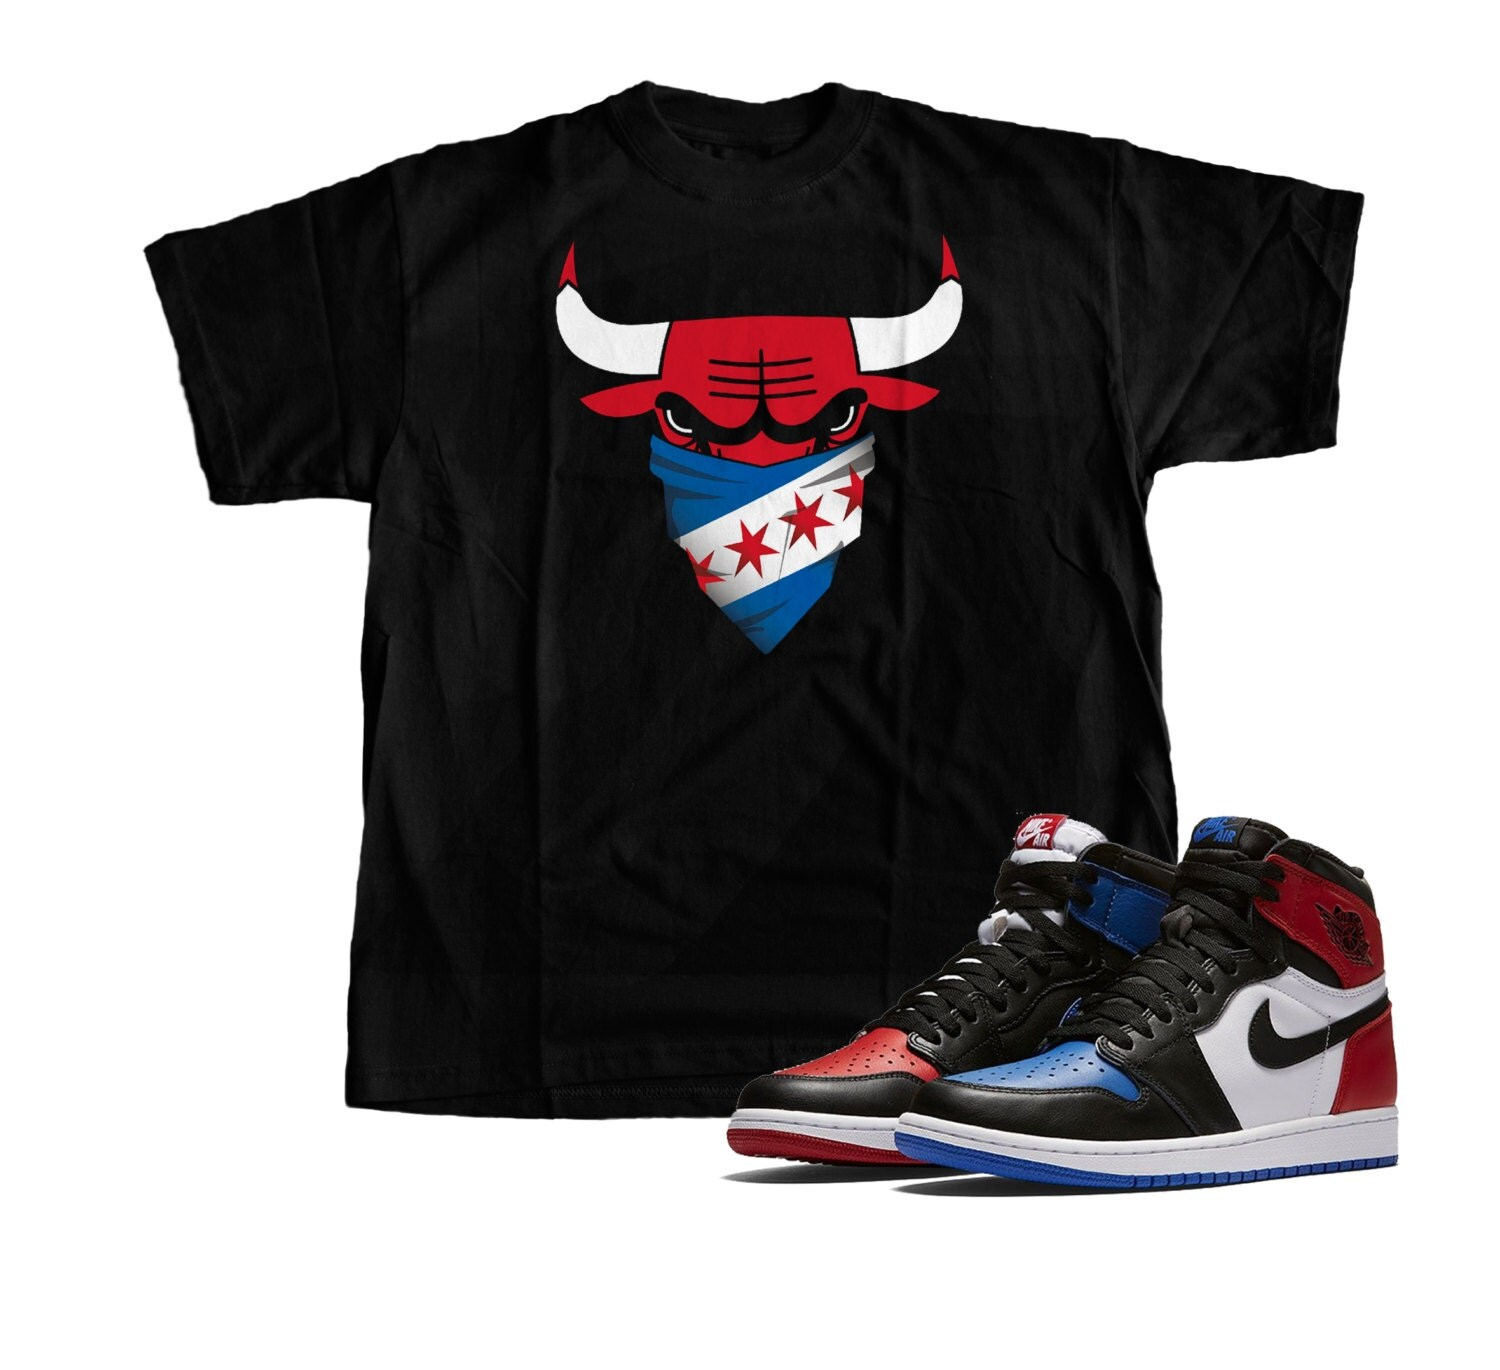 New,retro, Shirt, Match, Nikes, Air, Jordan, 1,